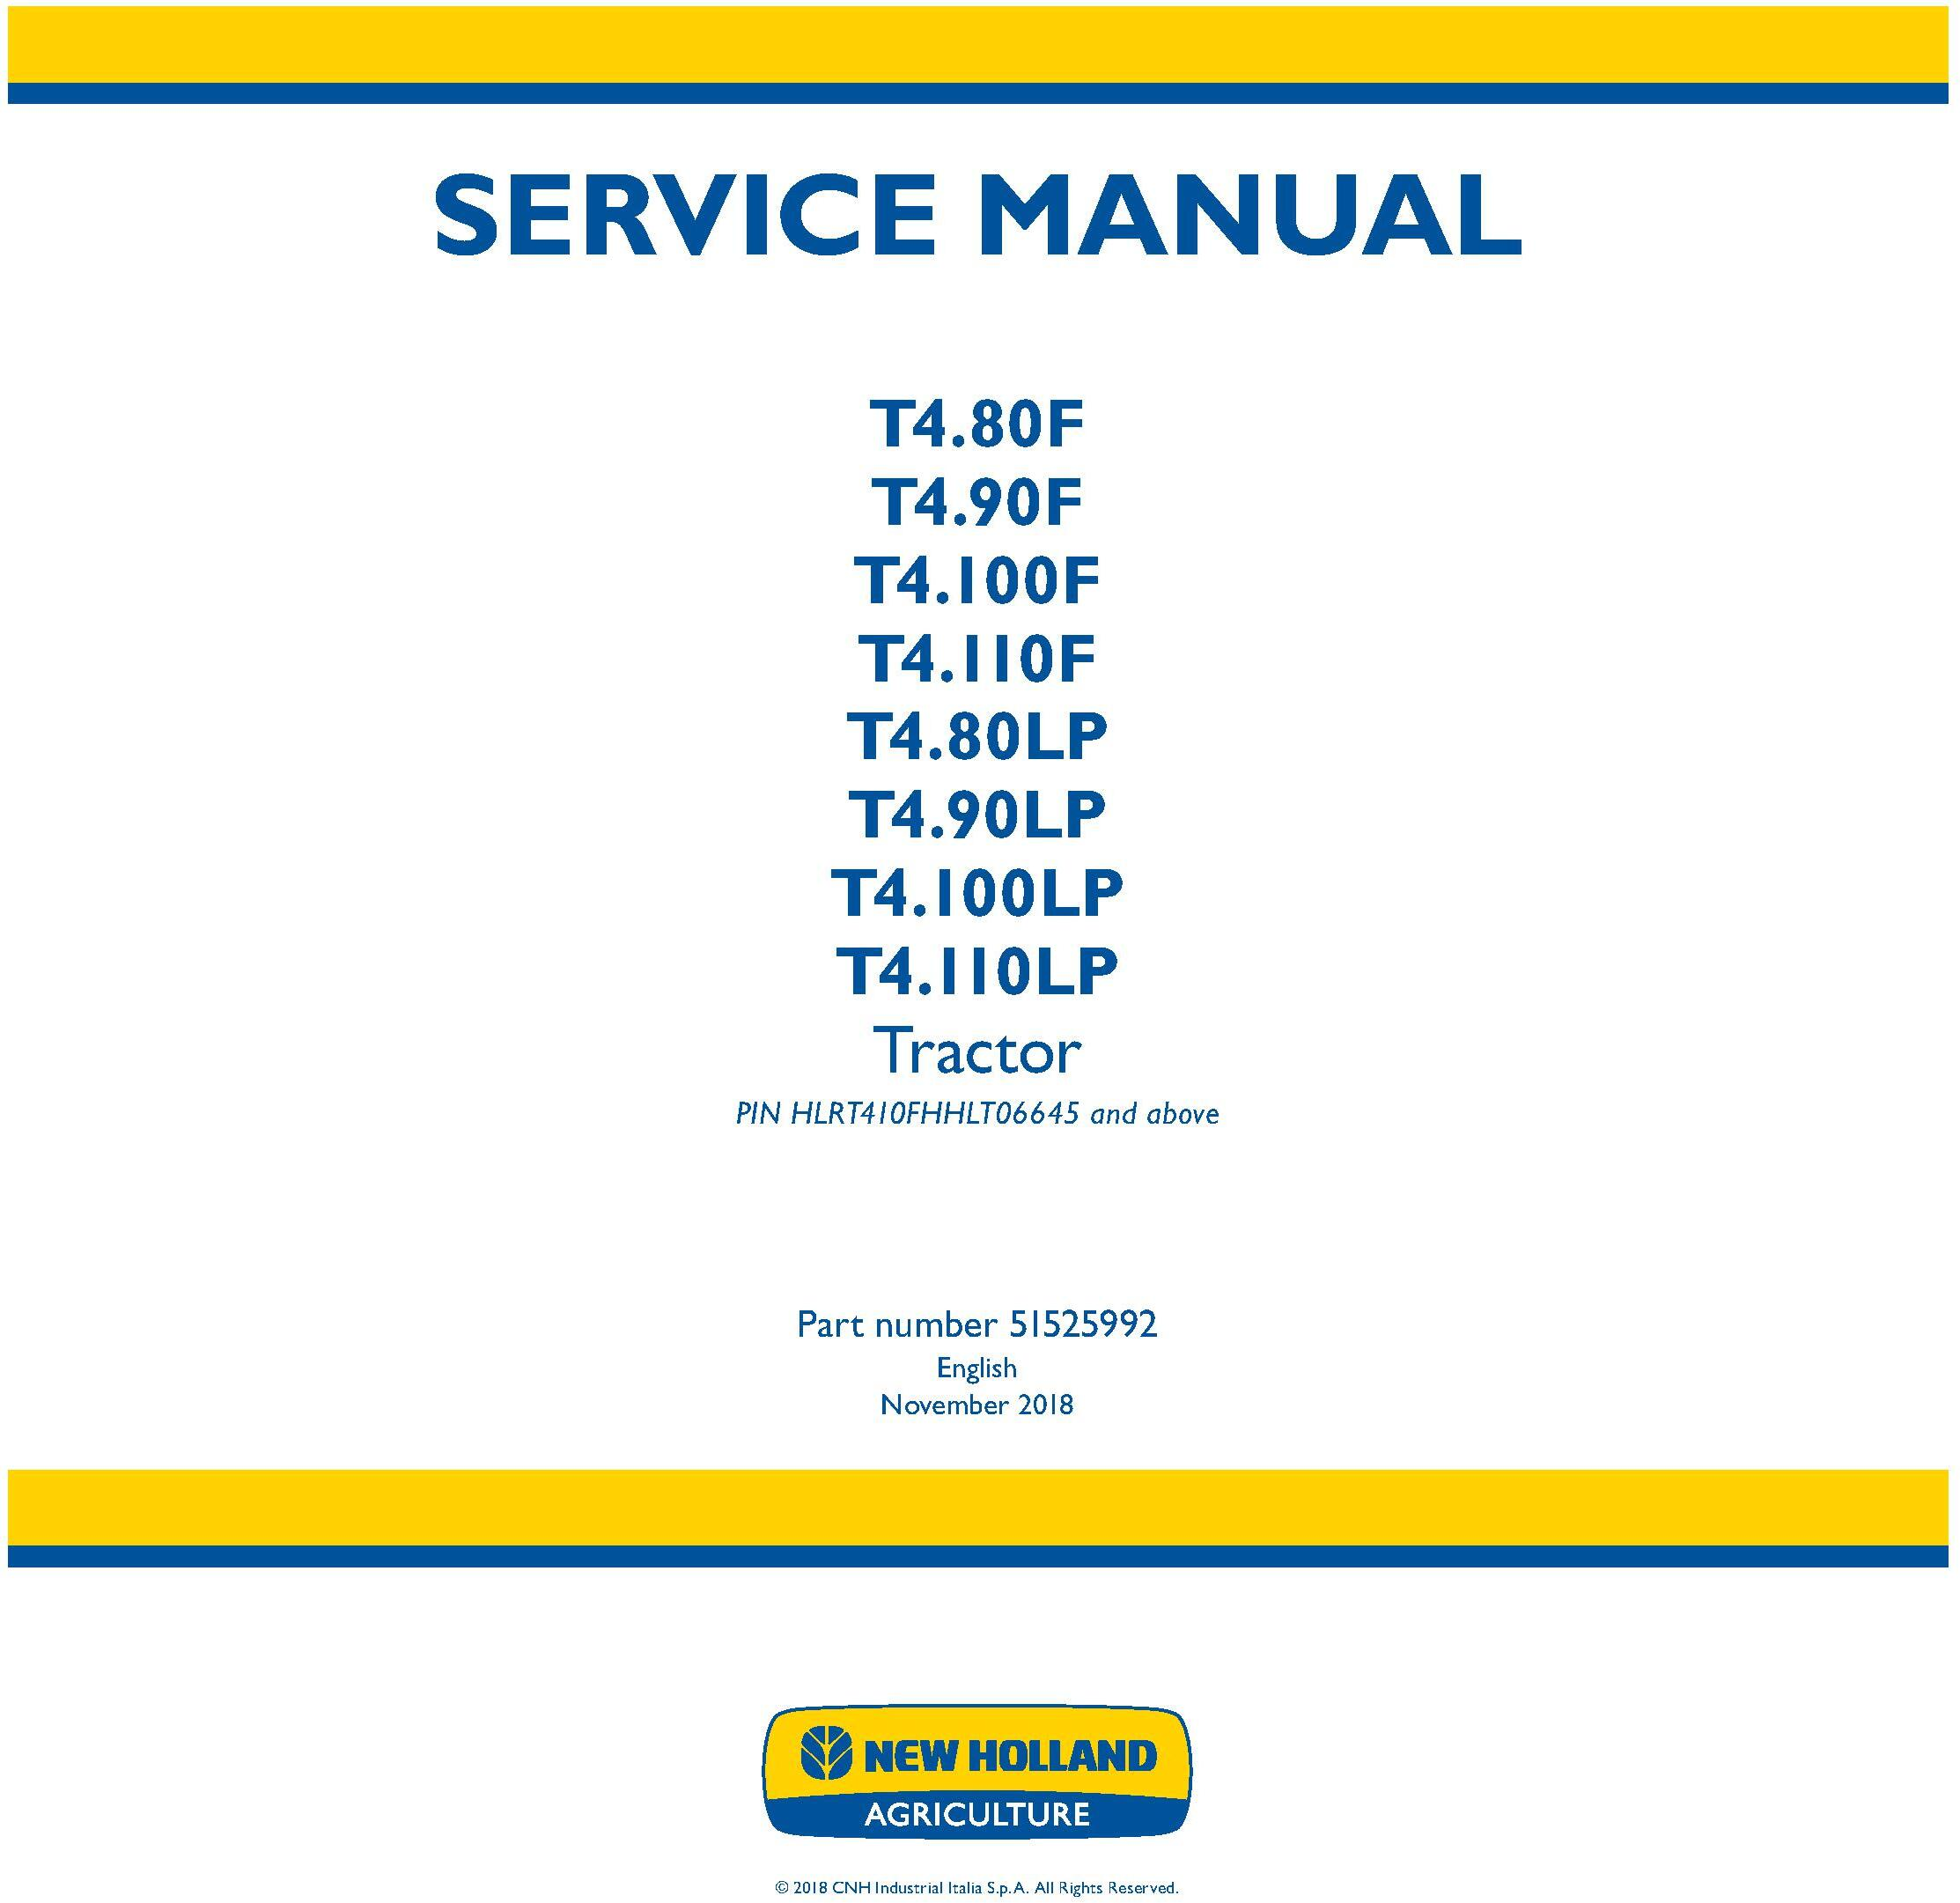 New Holland T4.80F/LP, T4.90F/LP, T4.100F/LP, T4.110F/LP Tractor Tier4A & Stage IIIB Service Manual - 19524